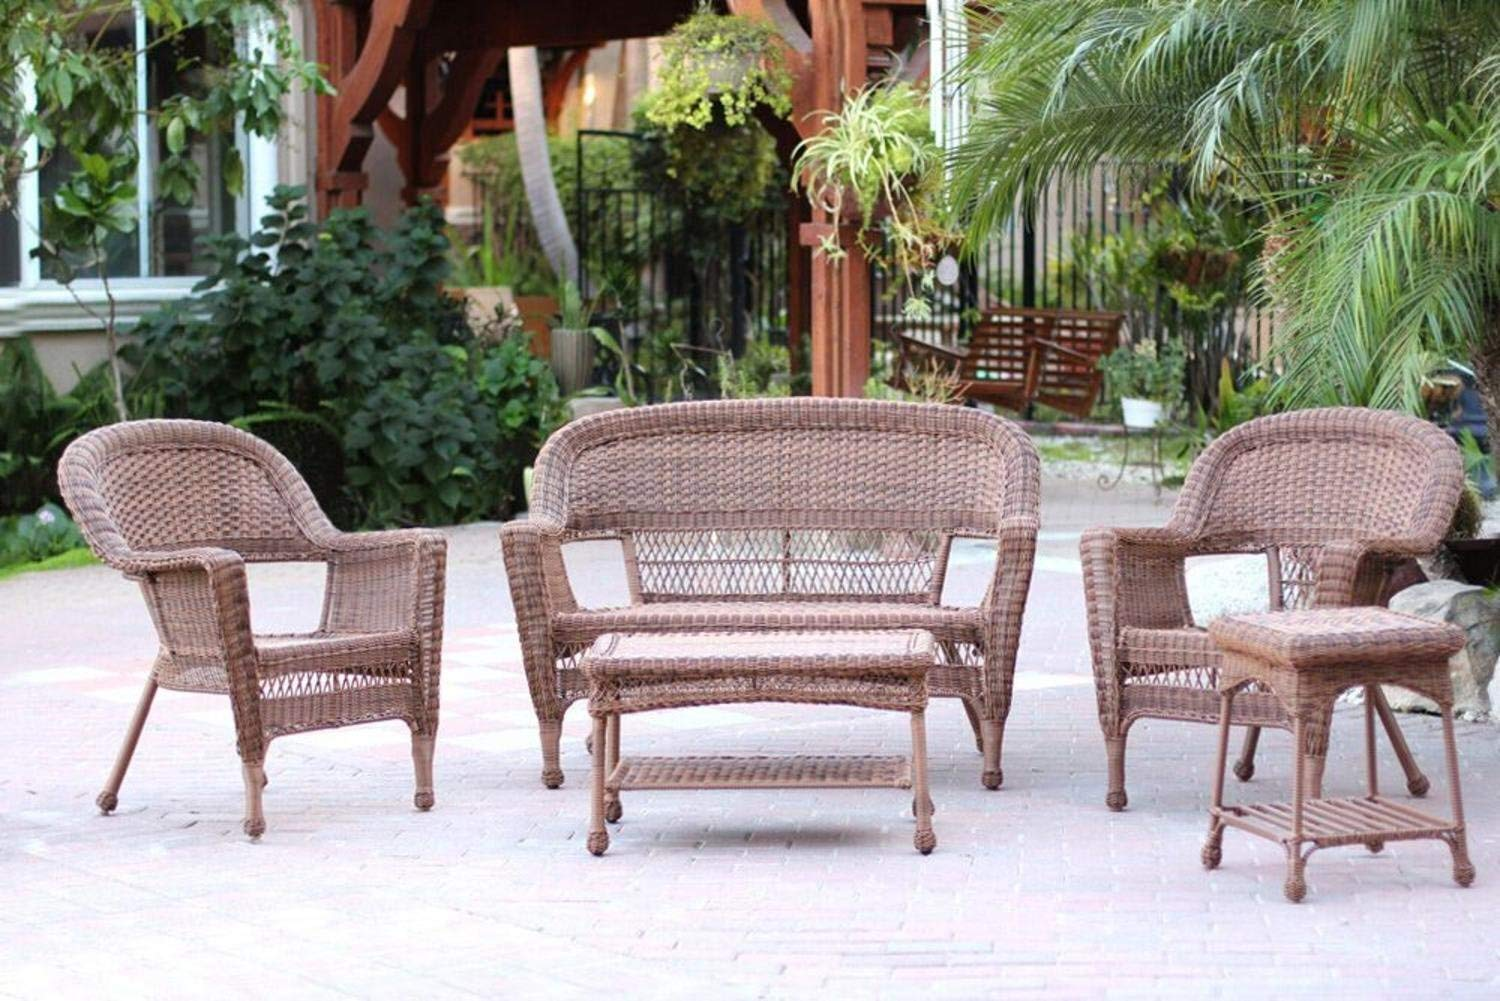 Wicker Patio Chair 4 Piece Swann Honey Brown Wicker Patio Chairs Loveseat And Table Furniture Set 4 Piece Swann Honey Brown Wicker Patio Chairs Loveseat And Table